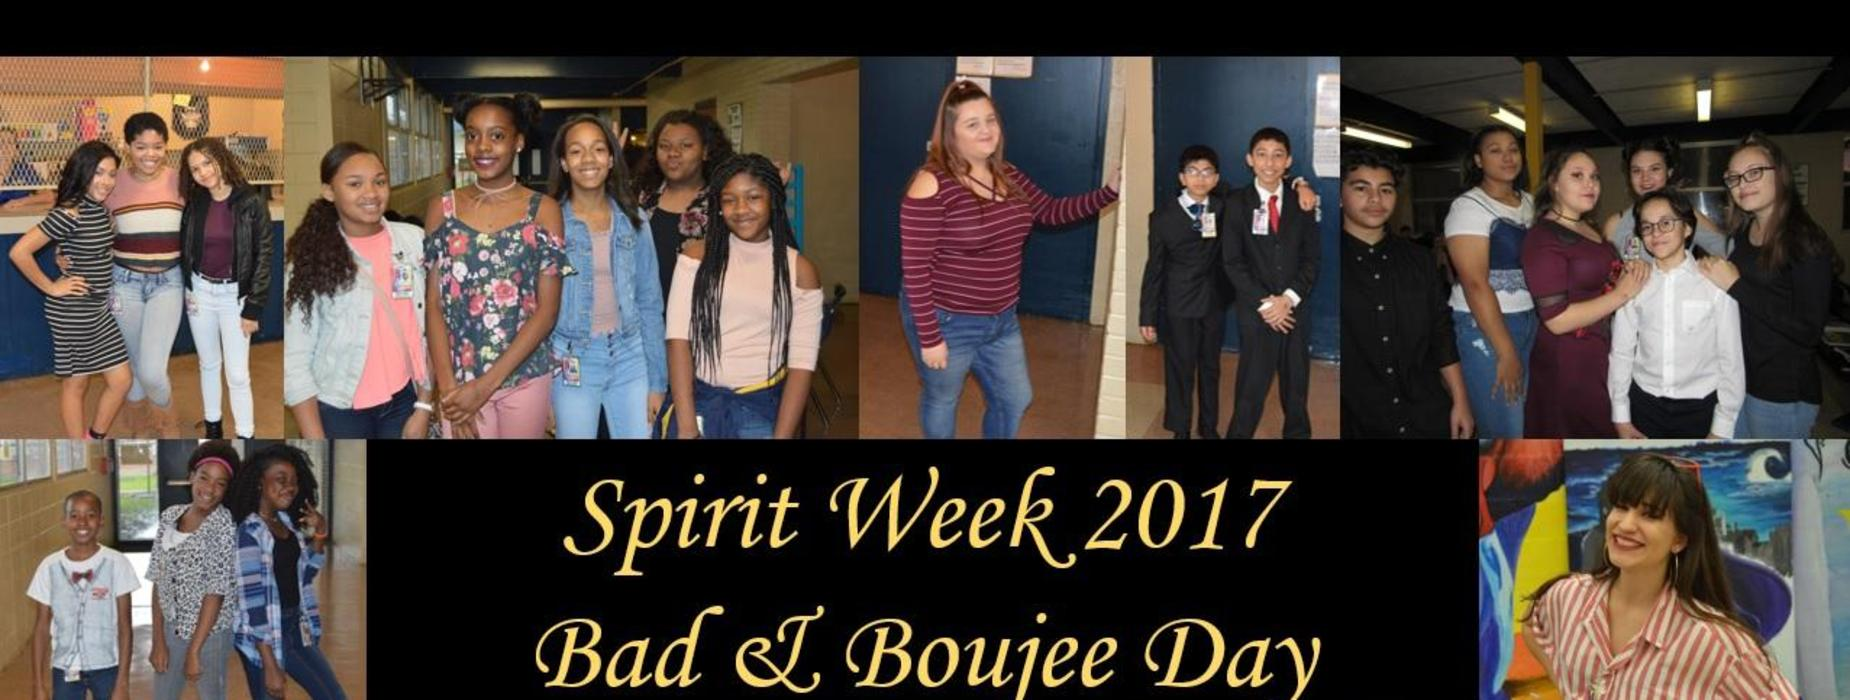 Spirit Week - Bad & Boujee